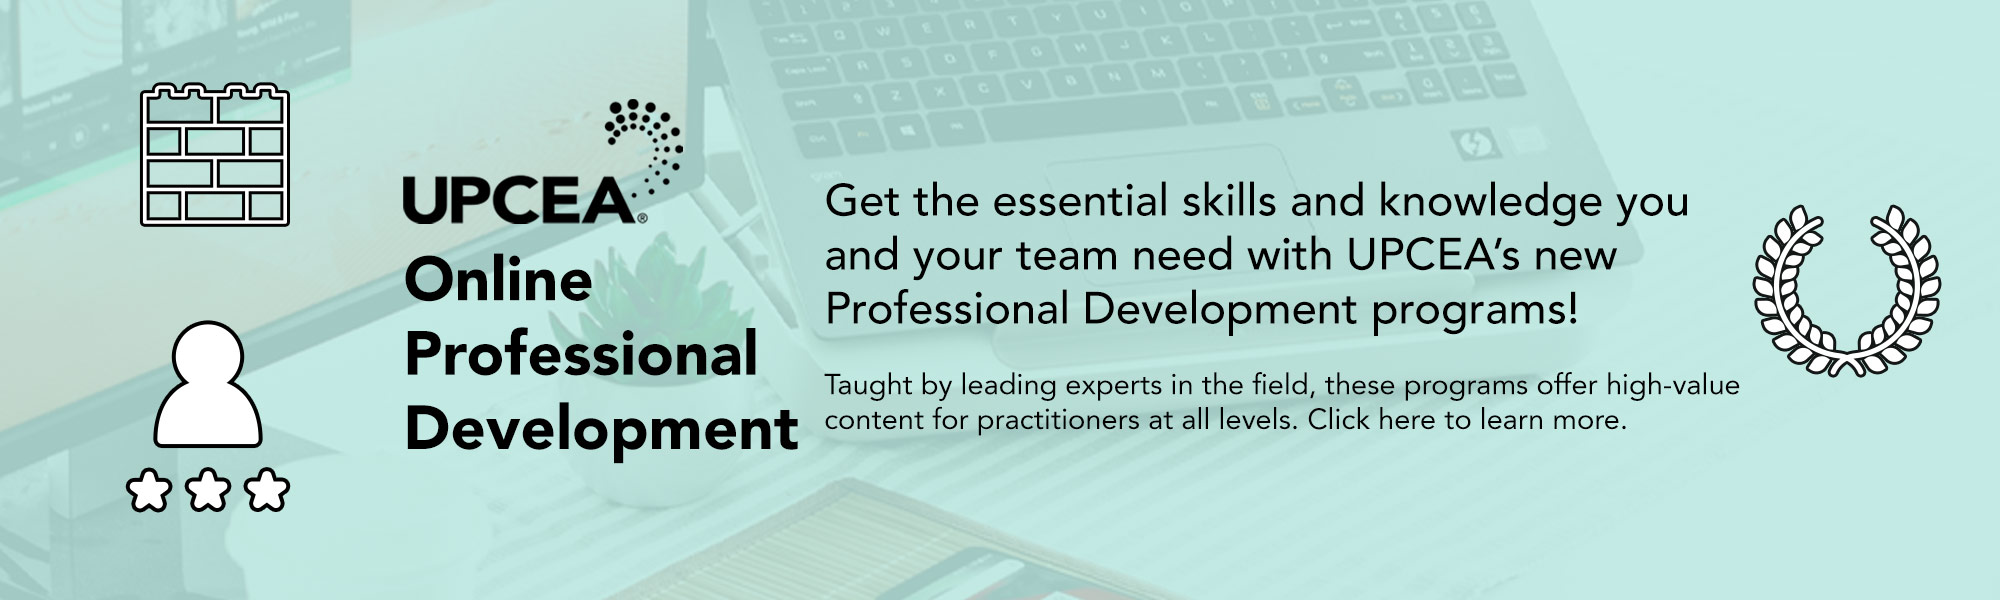 Online Professional Development by UPCEA - Certificate programs and coursework for the field of professional, continuing, and online education.